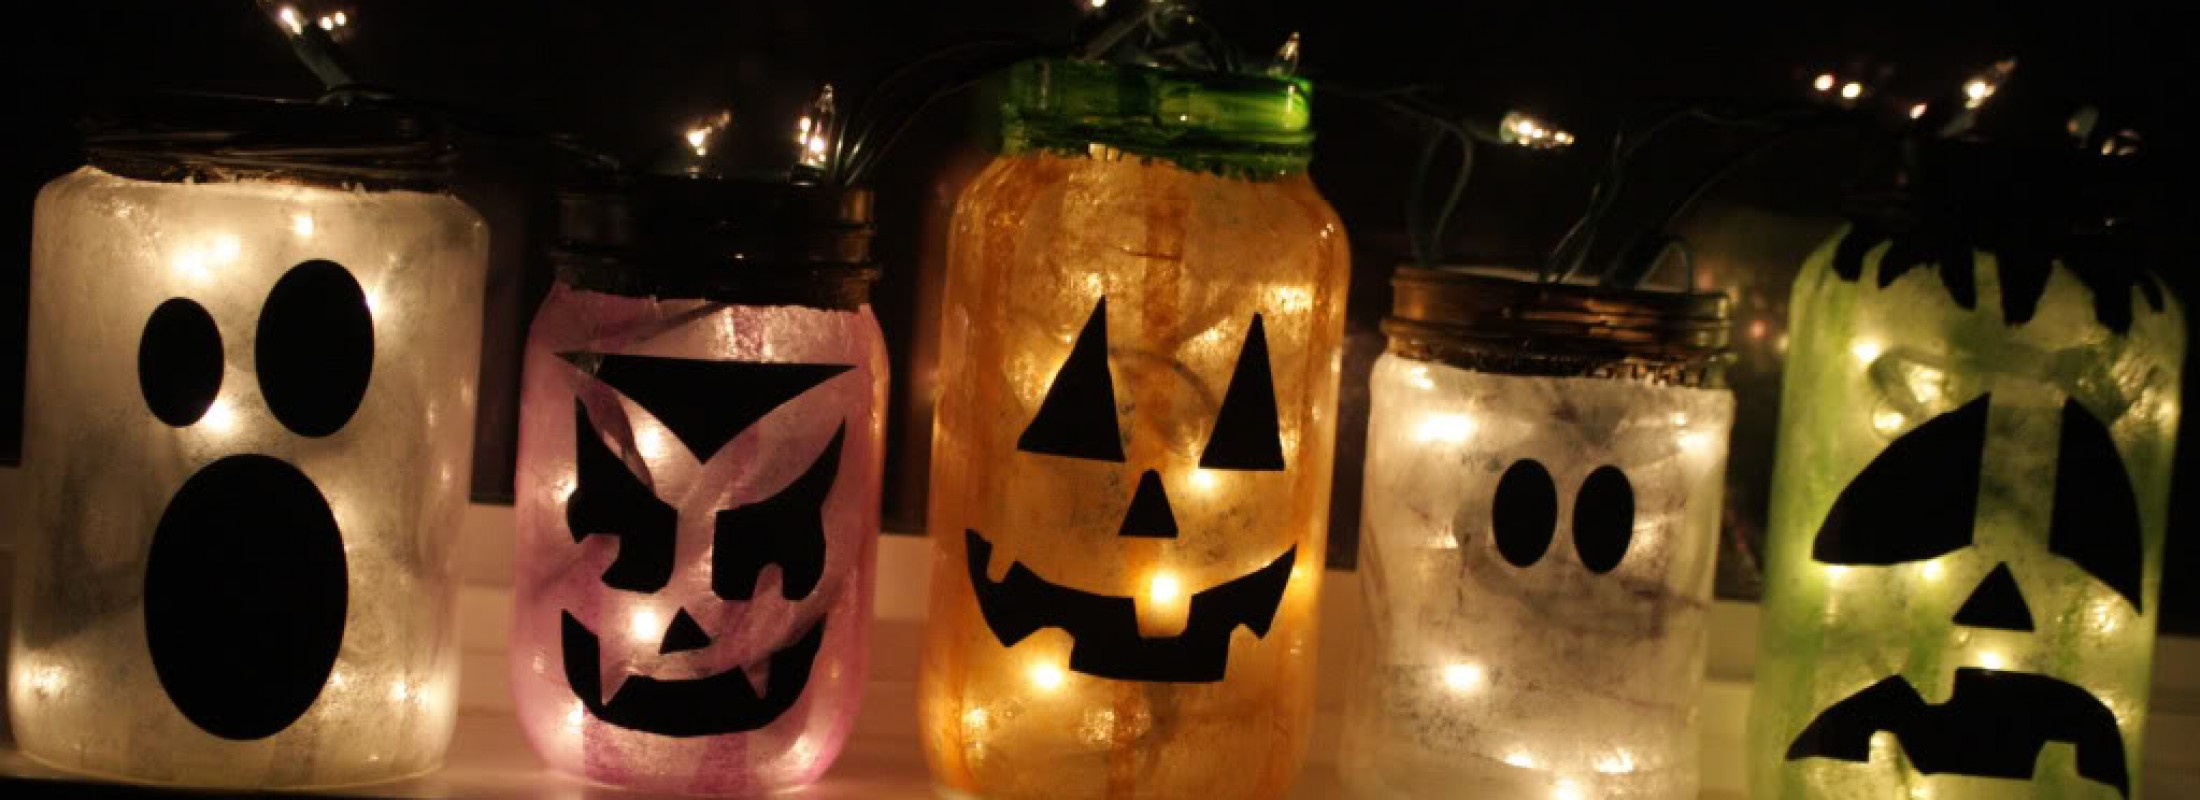 homemade halloween fun crafts that are simple